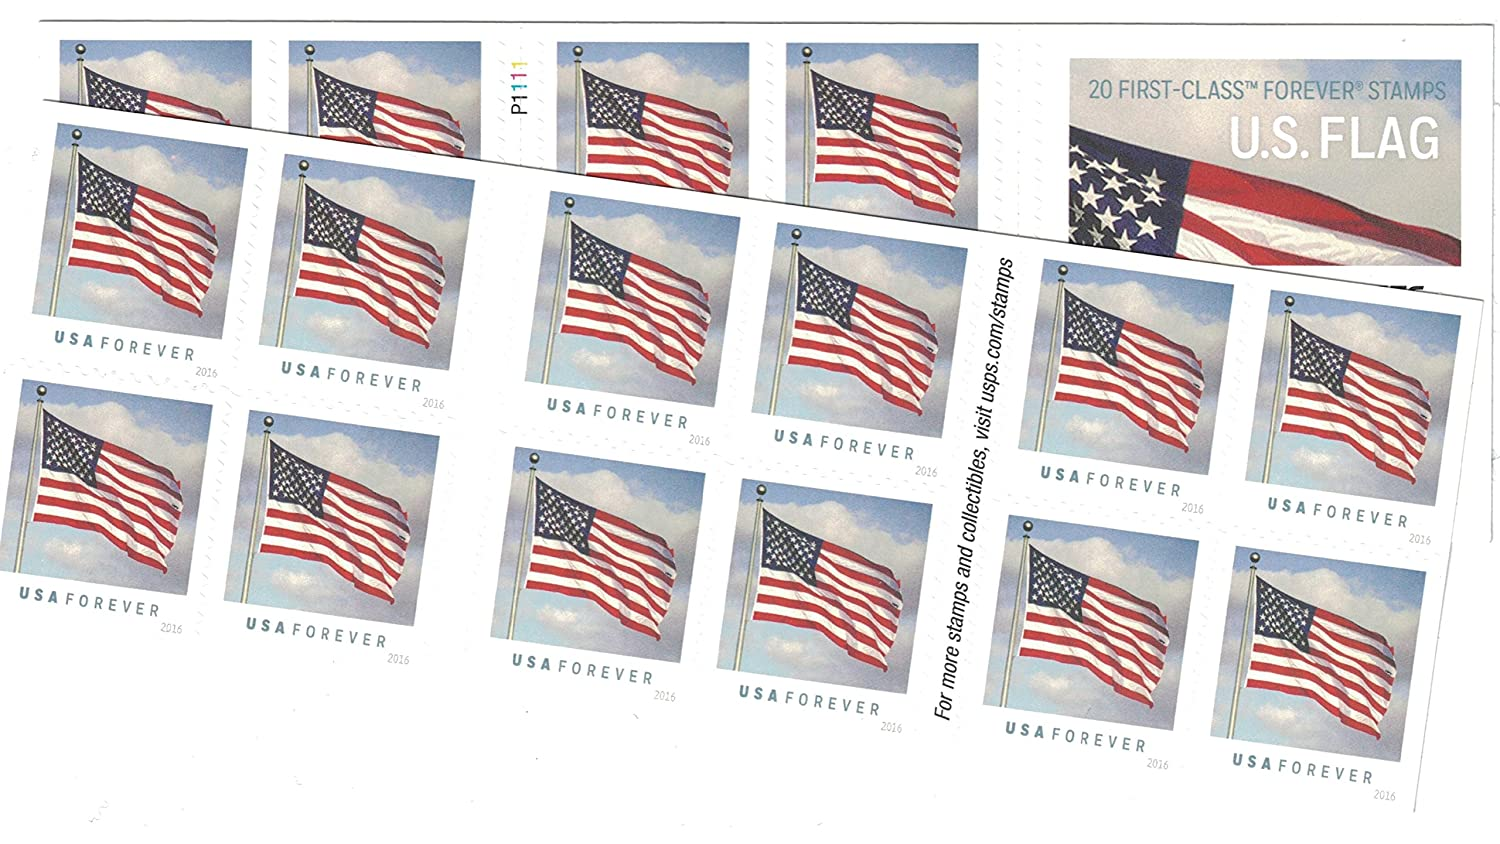 Amazoncom Usps Us Flag Forever Stamps 40 Stamps Two Books Of 20 - United-states-forever-stamps